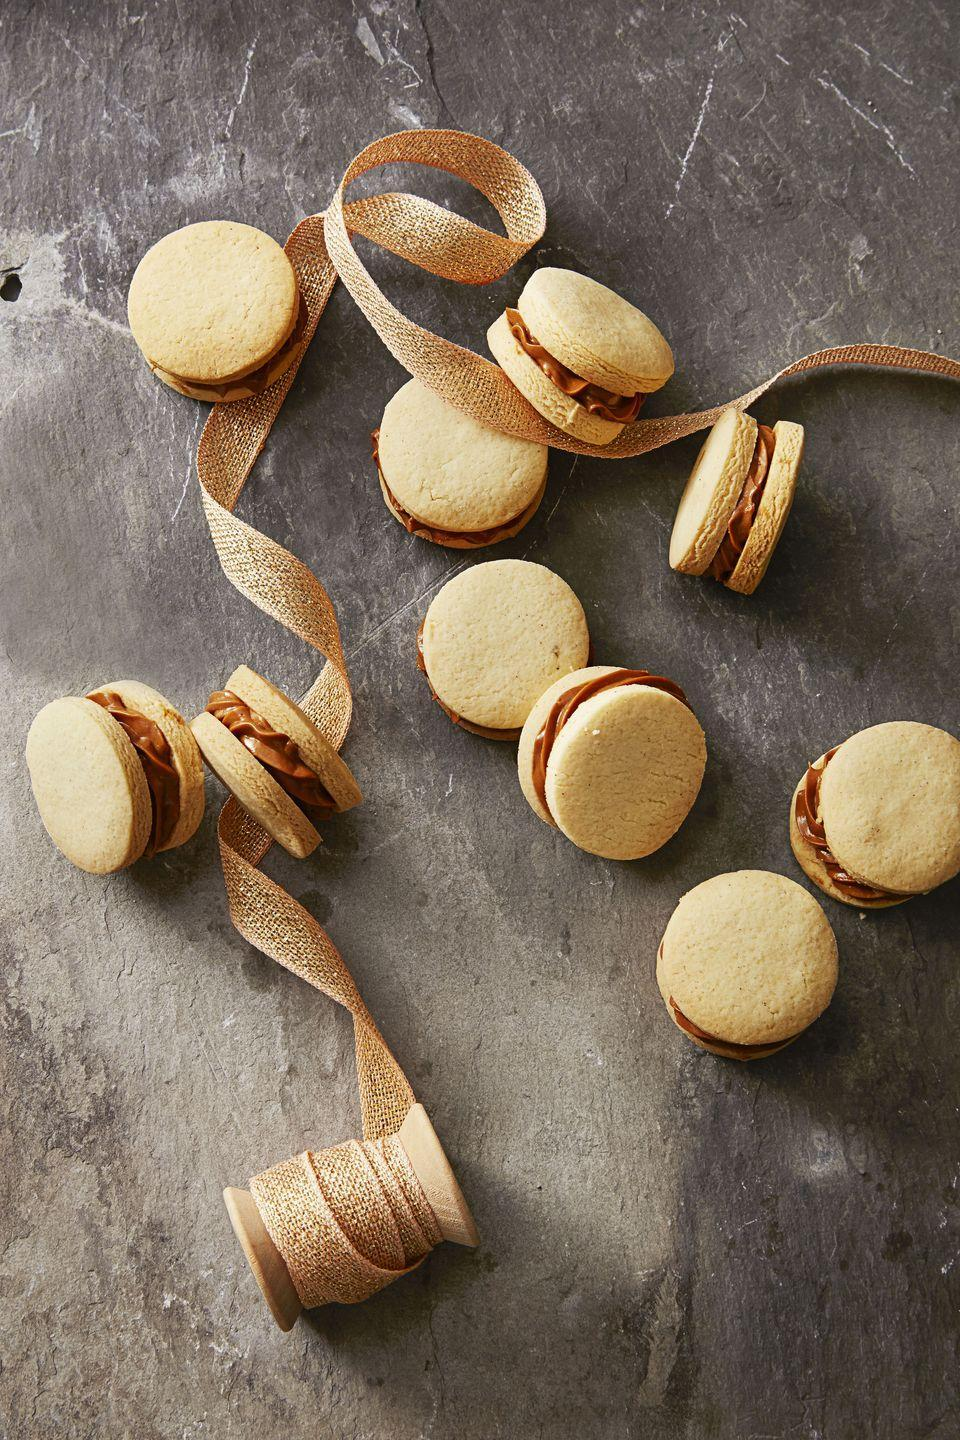 "<p>These caramel-filled sweets are also known as alfajores, a classic coffee-shop cookie in Argentina. Try 'em with your favorite morning brew.</p><p><em><a href=""https://www.goodhousekeeping.com/food-recipes/dessert/a35757/dulce-de-leche-sandwiches/"" rel=""nofollow noopener"" target=""_blank"" data-ylk=""slk:Get the recipe for Dulce de Leche Sandwiches »"" class=""link rapid-noclick-resp"">Get the recipe for Dulce de Leche Sandwiches »</a></em></p><p><strong>RELATED: </strong><a href=""https://www.goodhousekeeping.com/food-recipes/party-ideas/g31344562/cinco-de-mayo-desserts/"" rel=""nofollow noopener"" target=""_blank"" data-ylk=""slk:30 Delicious Cinco de Mayo Desserts to Get the Party Started"" class=""link rapid-noclick-resp"">30 Delicious Cinco de Mayo Desserts to Get the Party Started</a></p>"